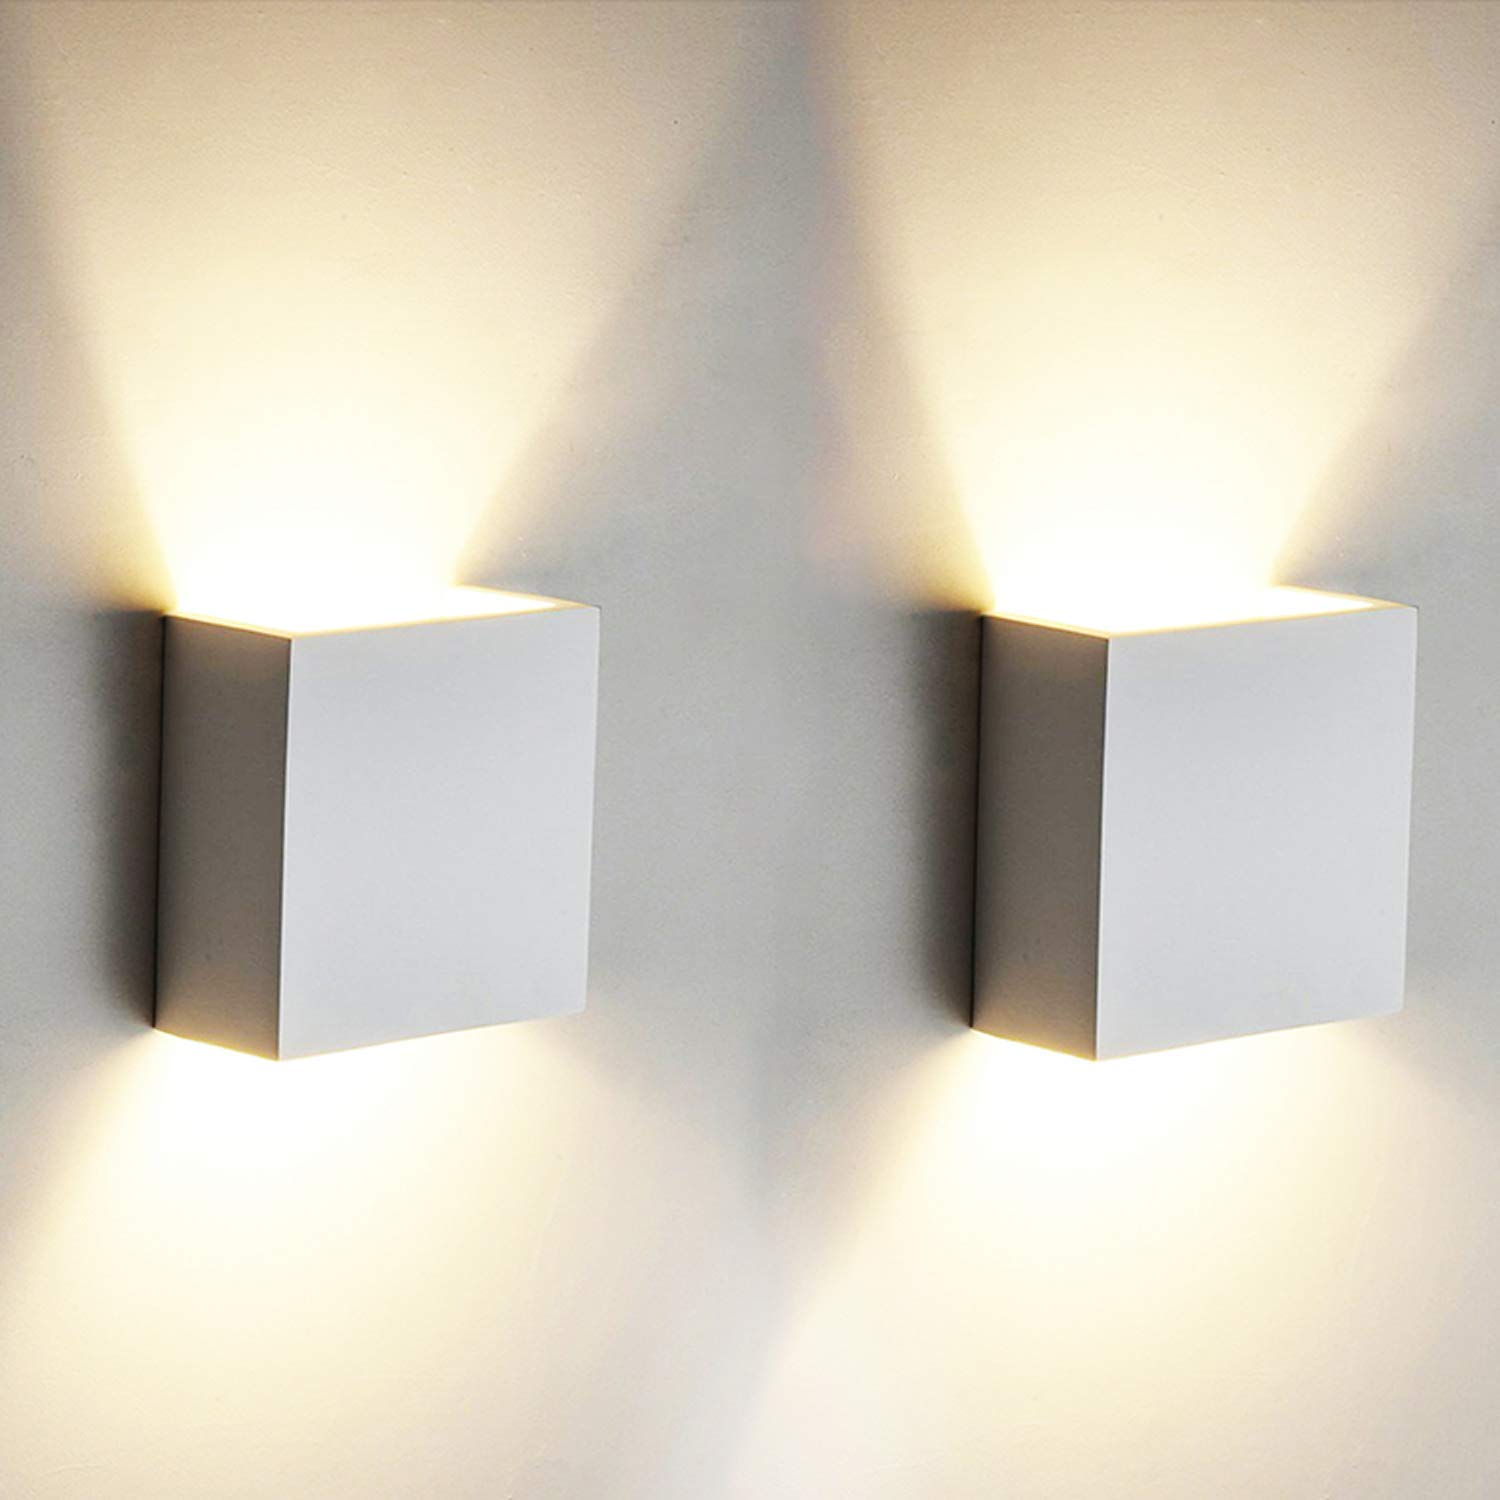 2 Pcs 6w Led Wall Light Up Down Indoor Oowolf